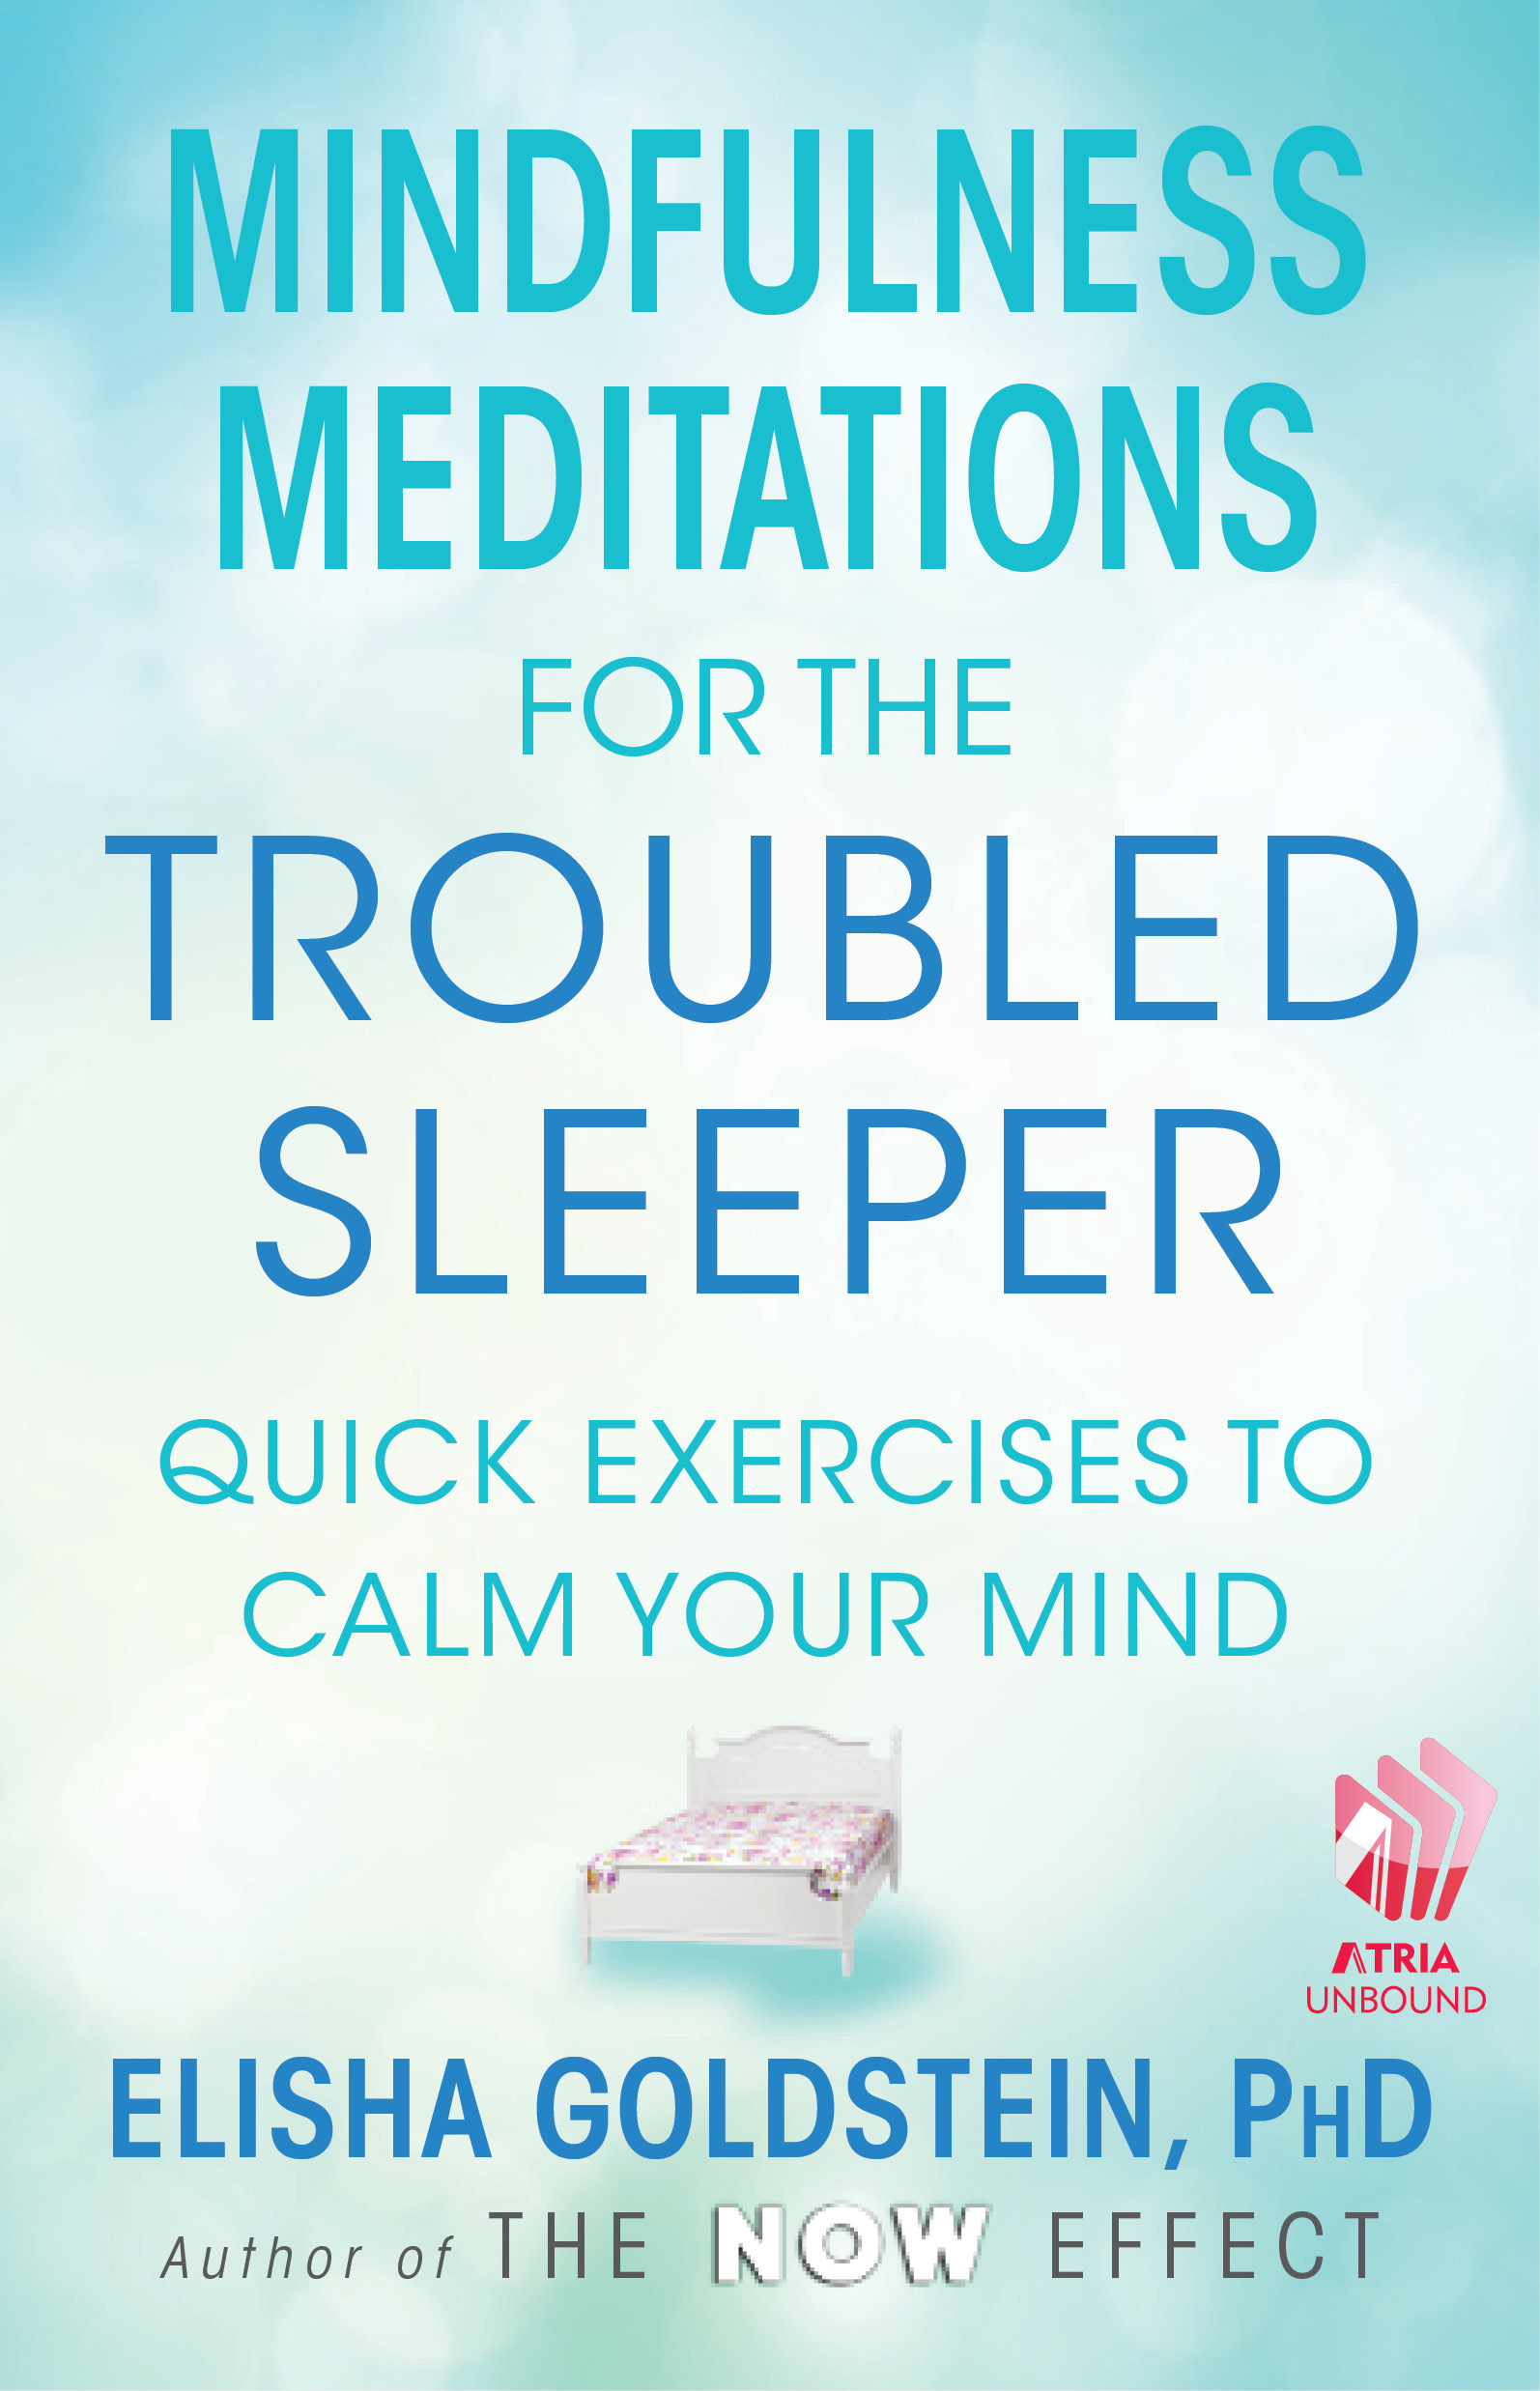 Mindfulness Meditations for the Troubled Sleeper By: Elisha Goldstein